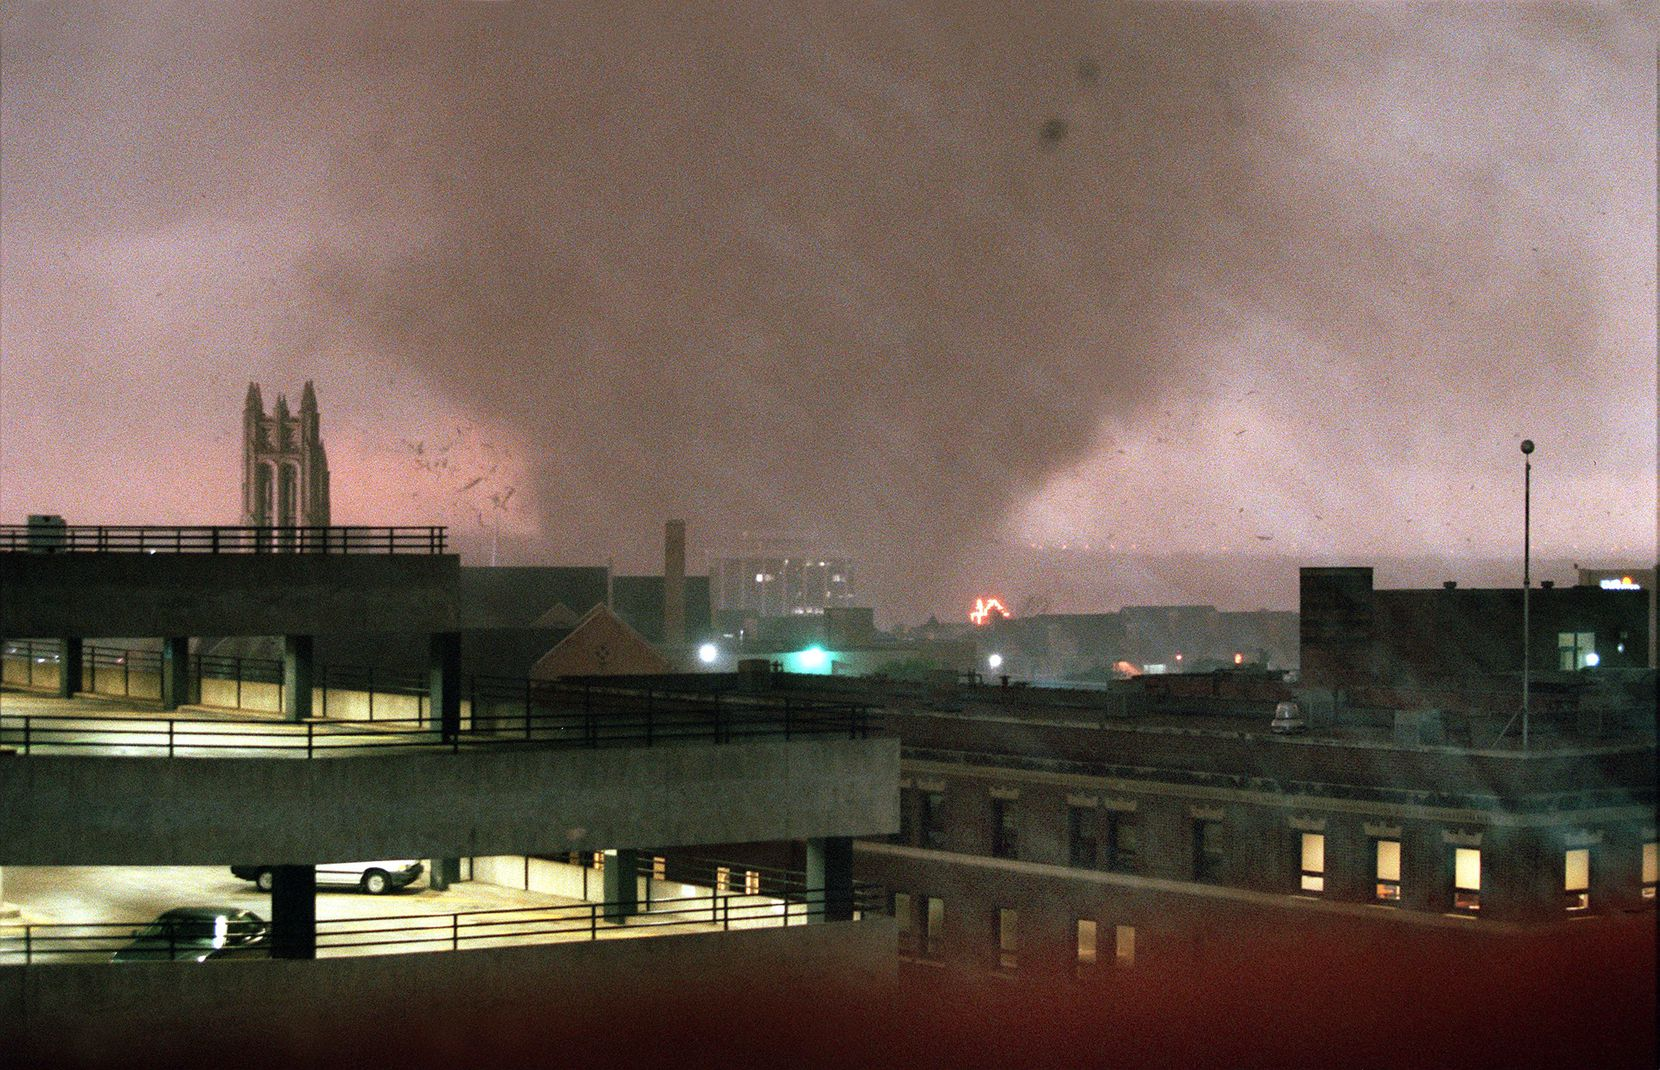 A tornado crosses the Trinity River on the west side of Fort Worth and heads for downtown on March 28, 2000. The Mallick Tower is pictured just at the base of the tornado.